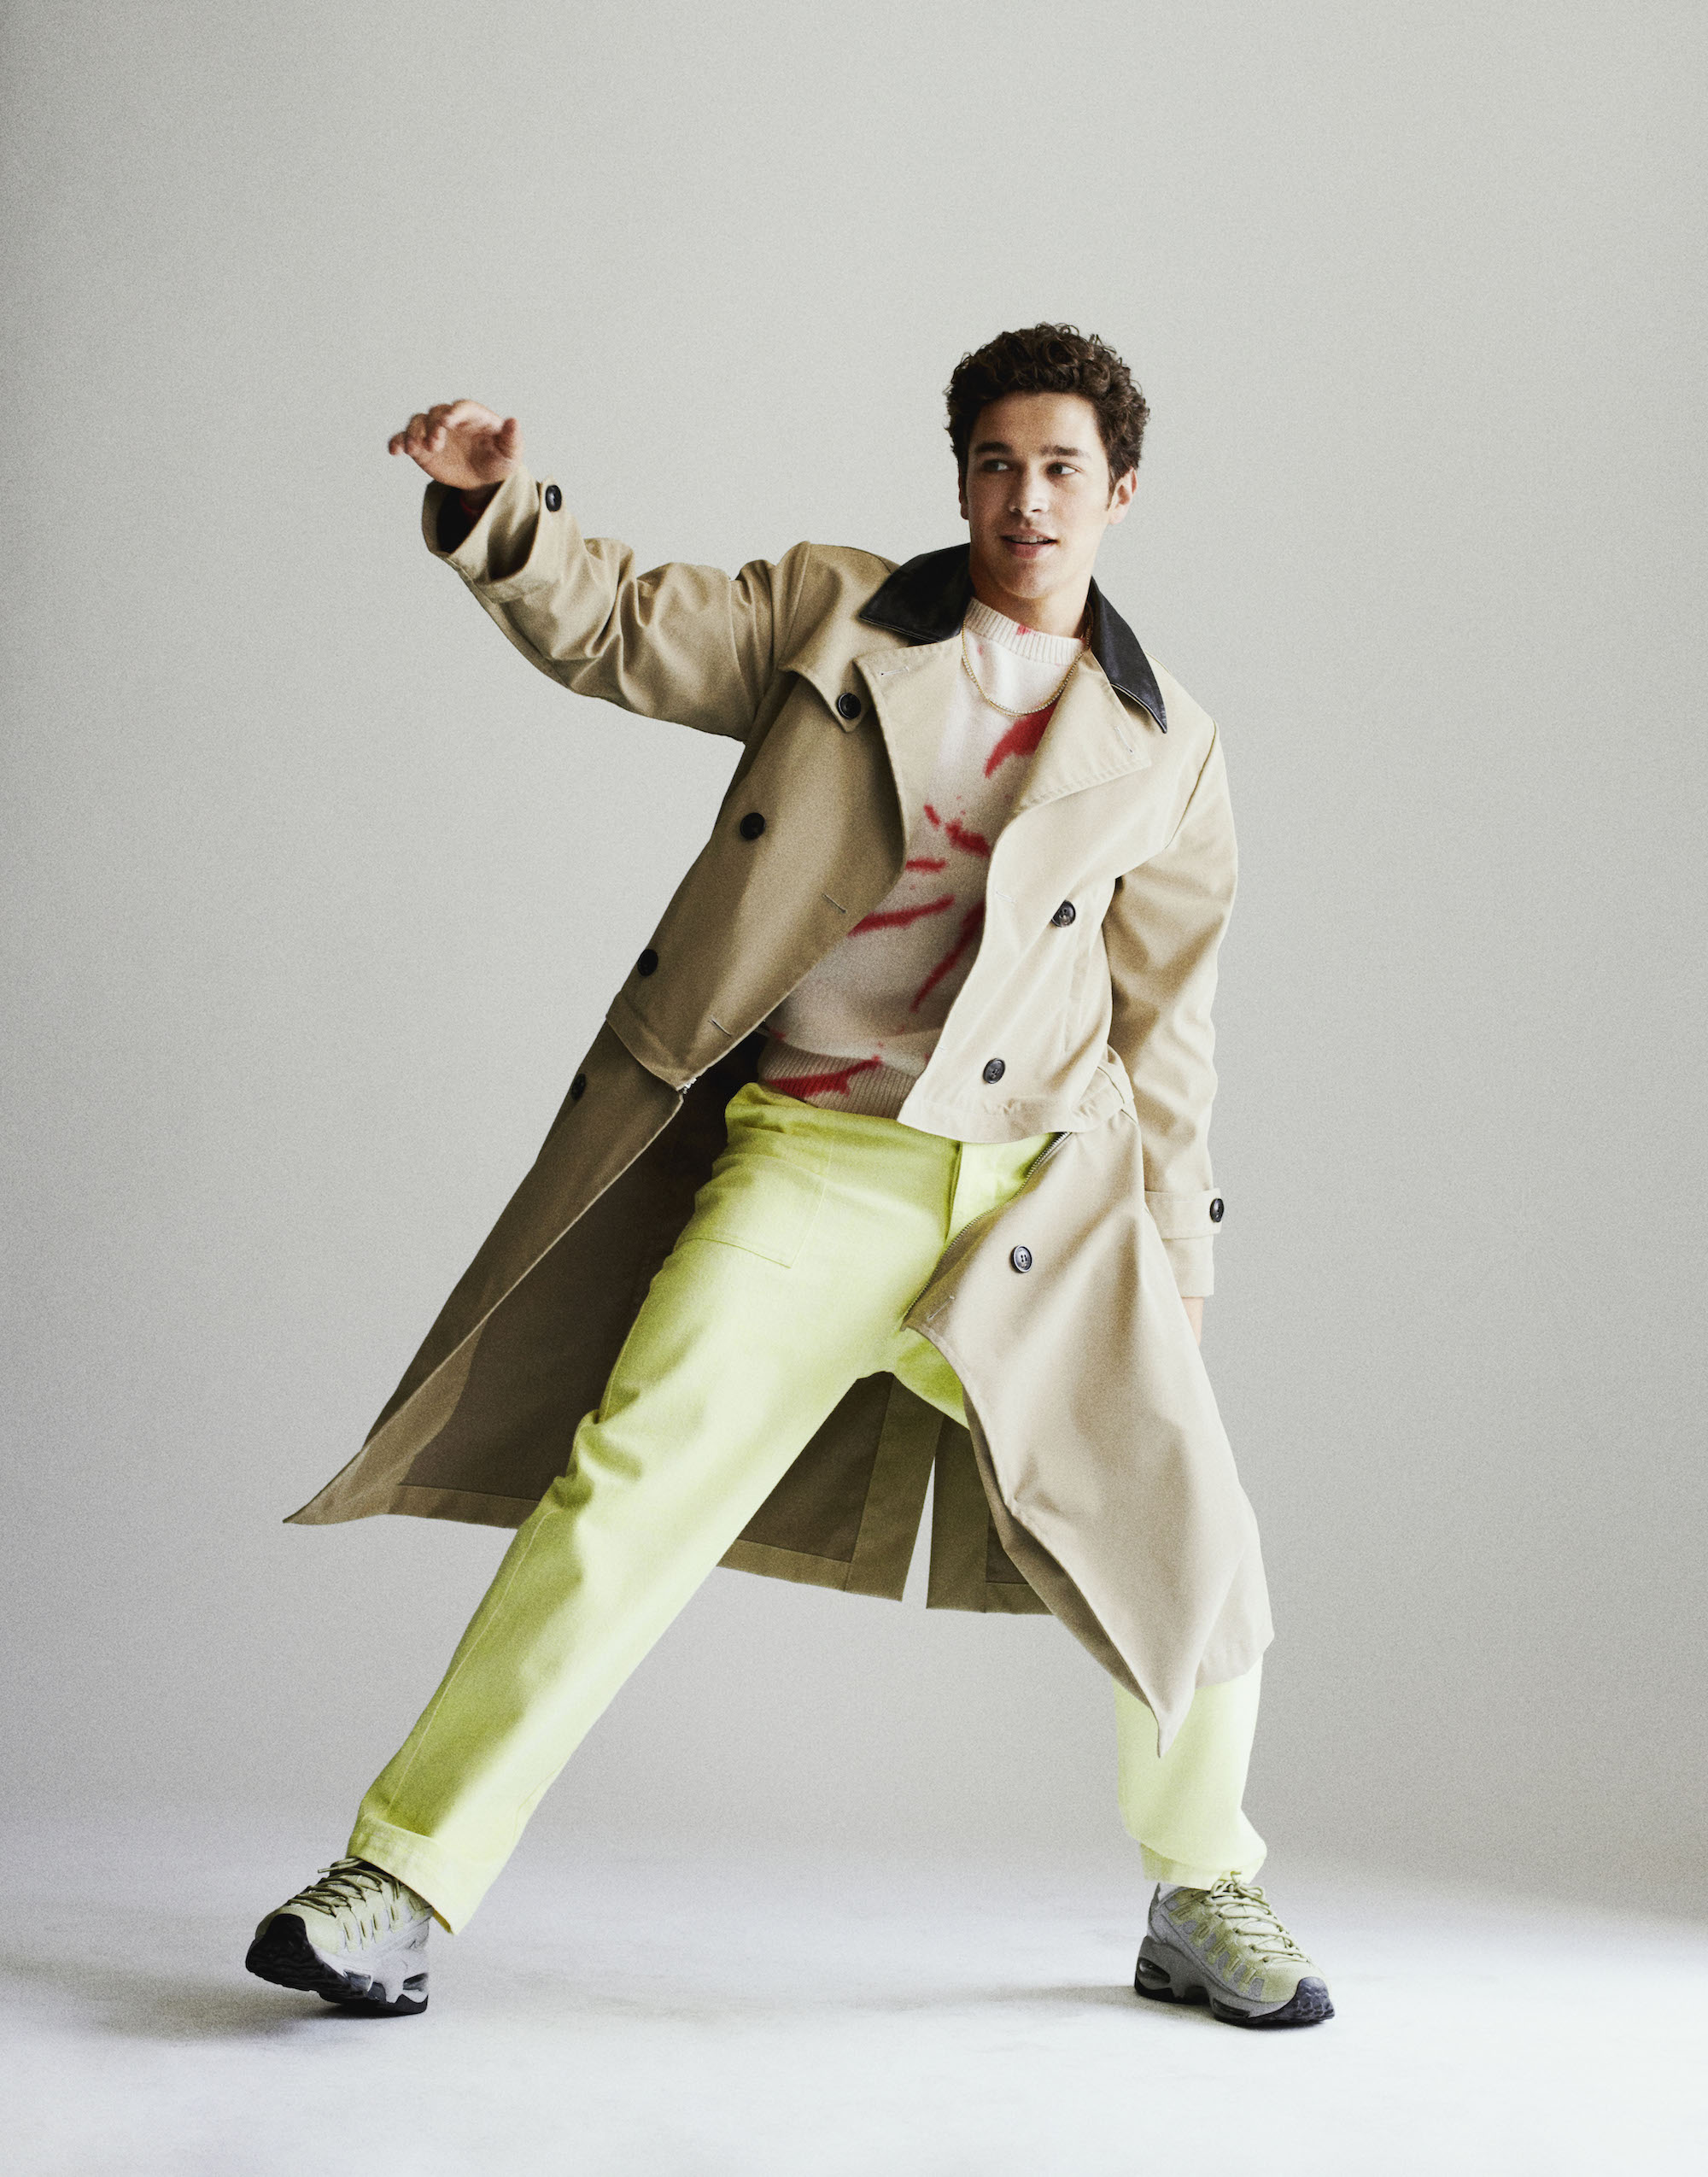 Austin Mahone interview in Summer 19 issue of Wonderland trench coat